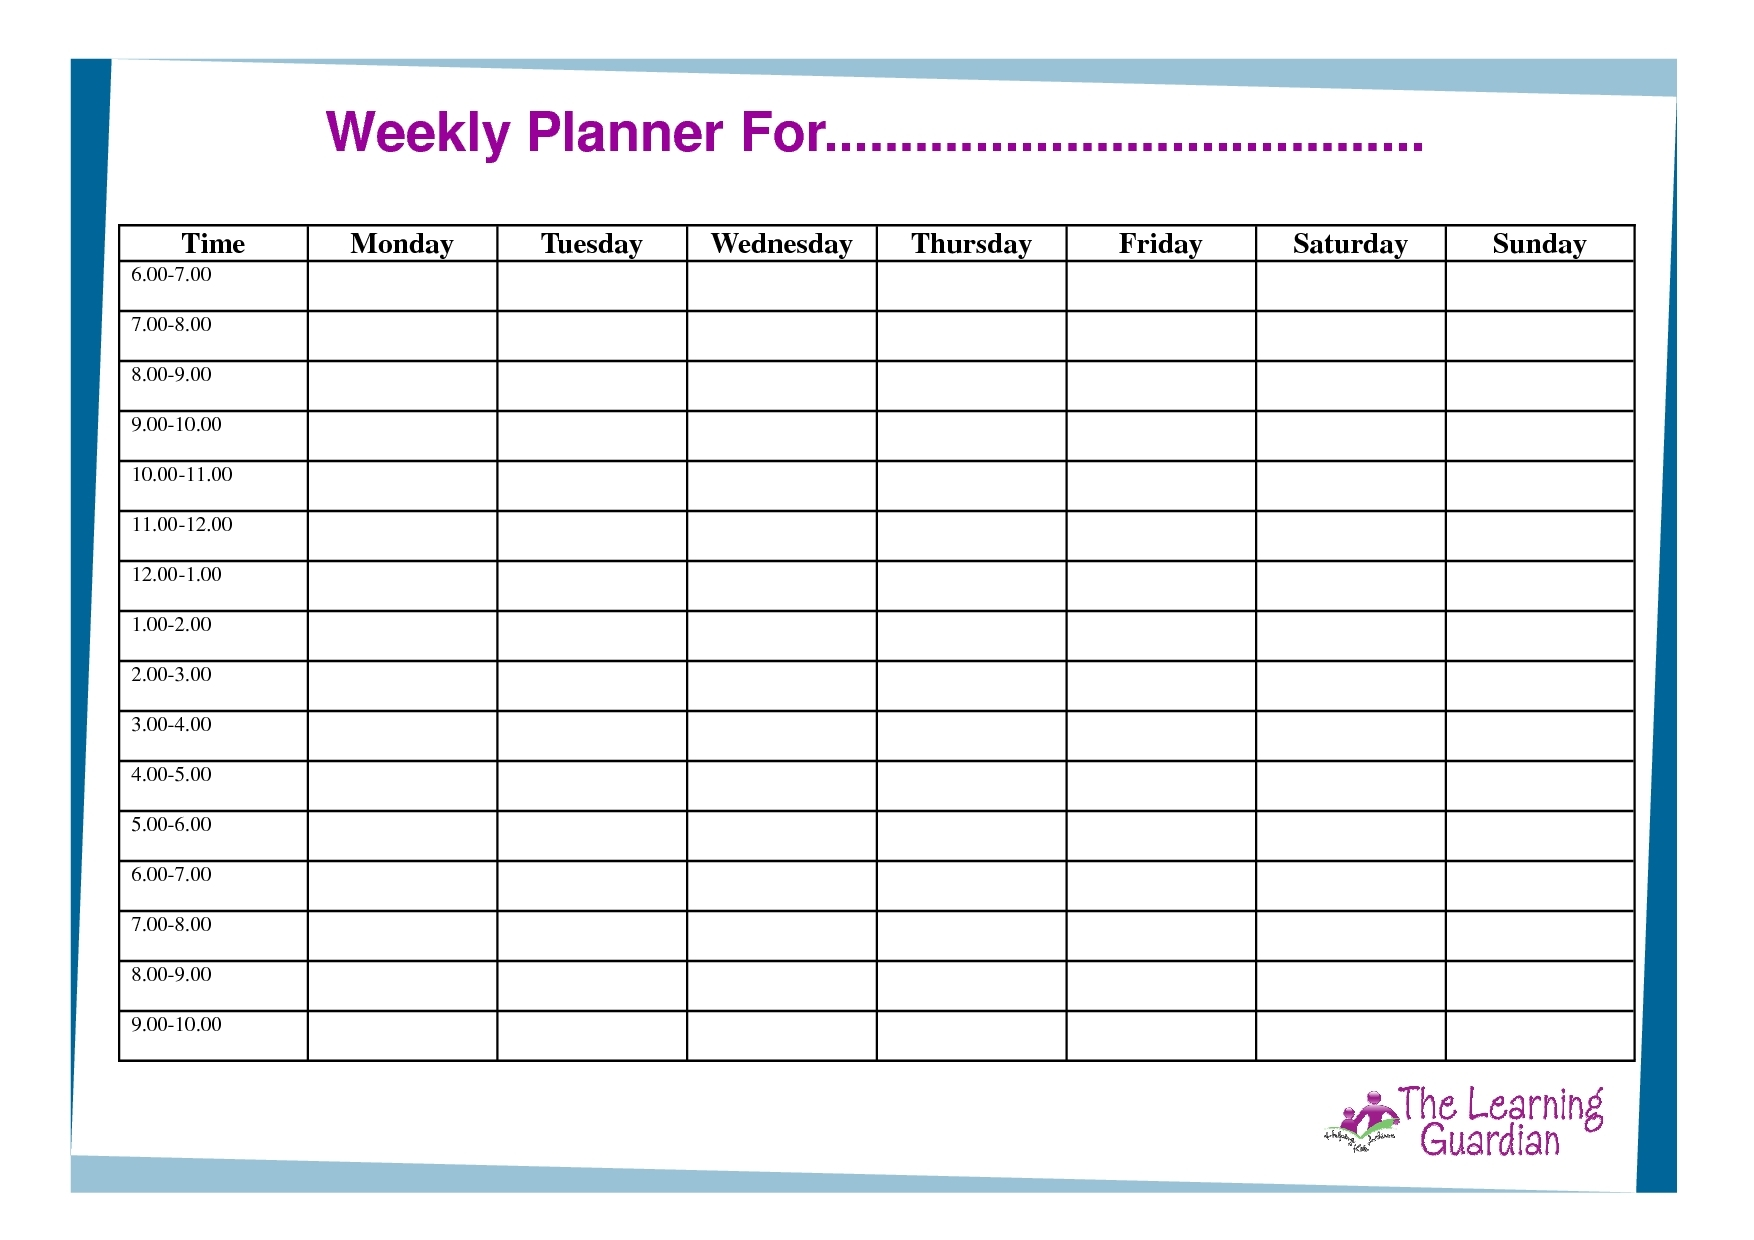 Blank Weekly Calendar Monday Through Friday Schedule Template Free pertaining to Weekly Calendar Template Monday Thru Friday